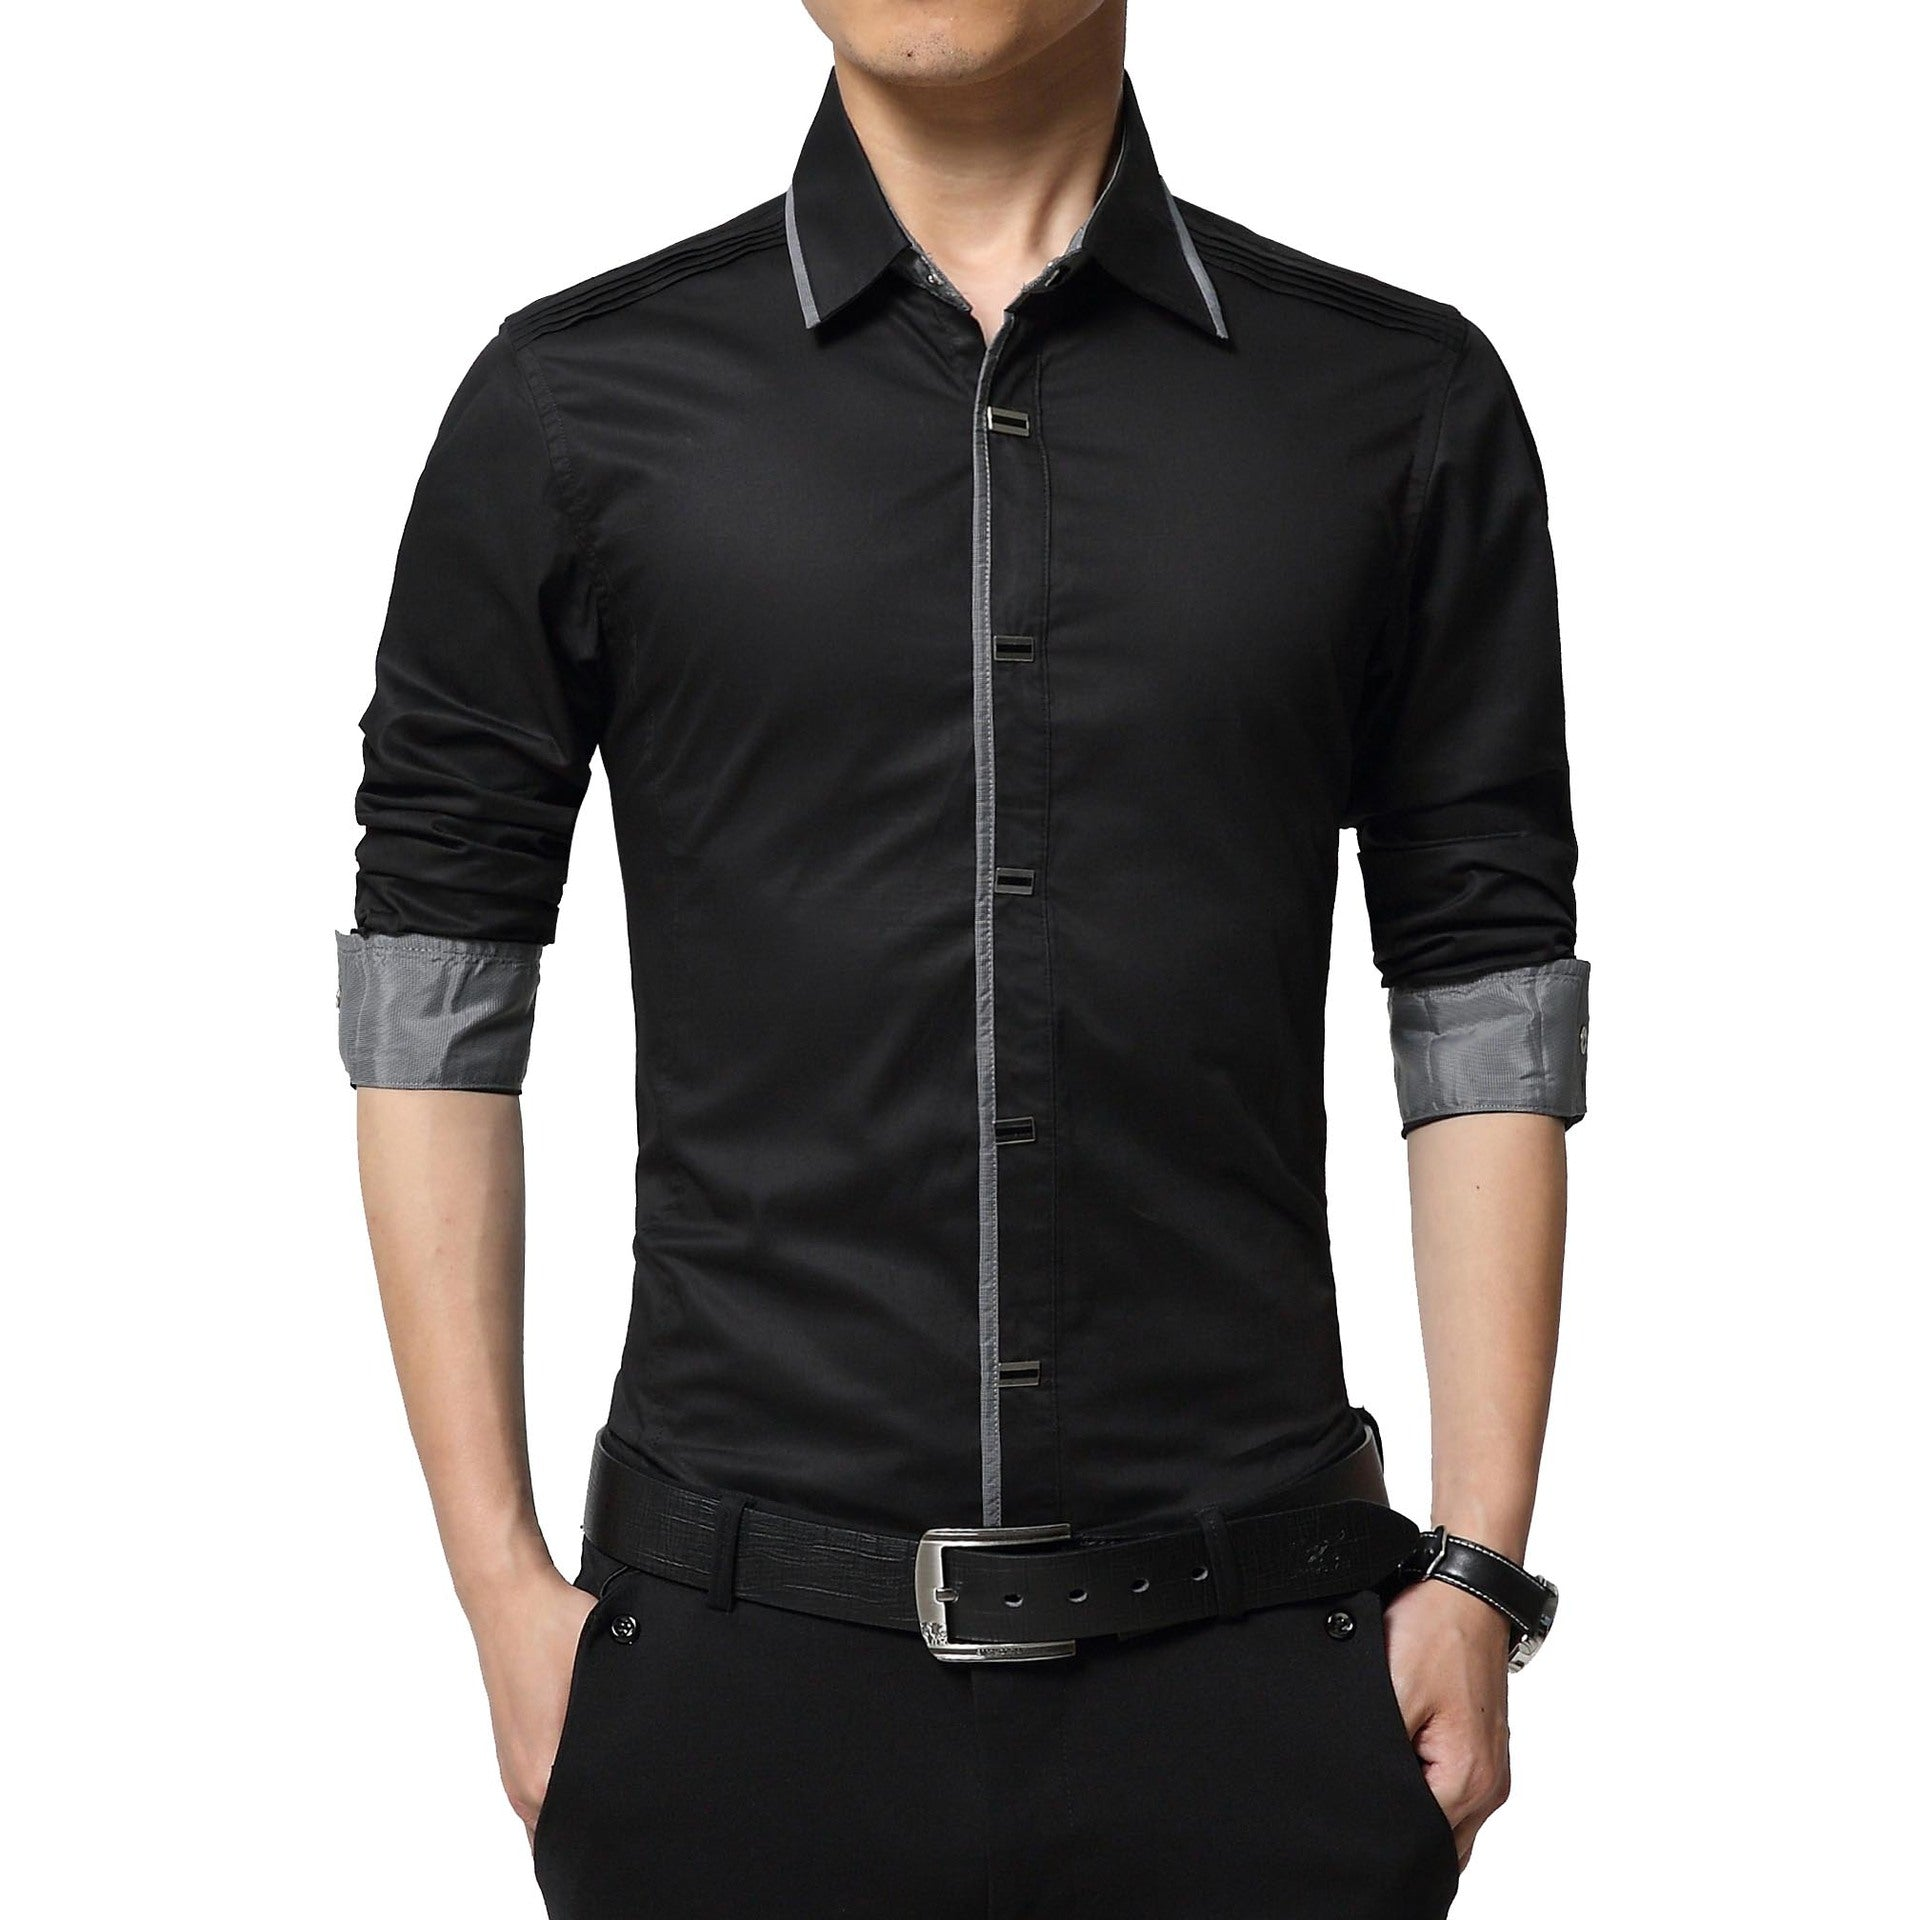 New 2017 Spring Autumn Cotton Dress Shirts High Quality Mens Casual